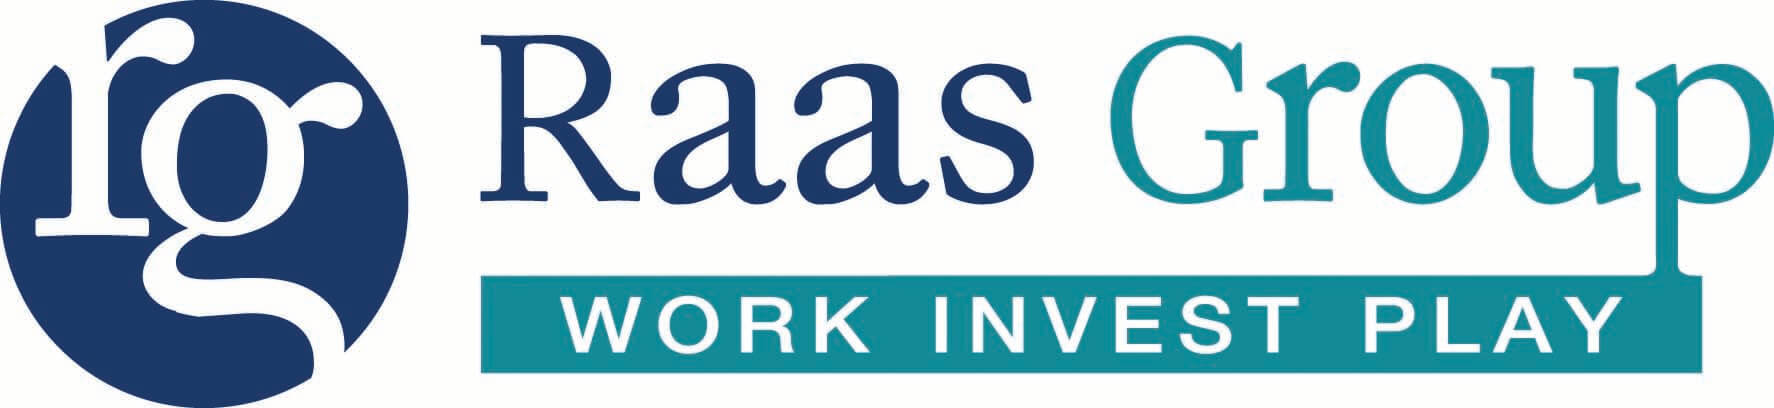 RAAS Group logo